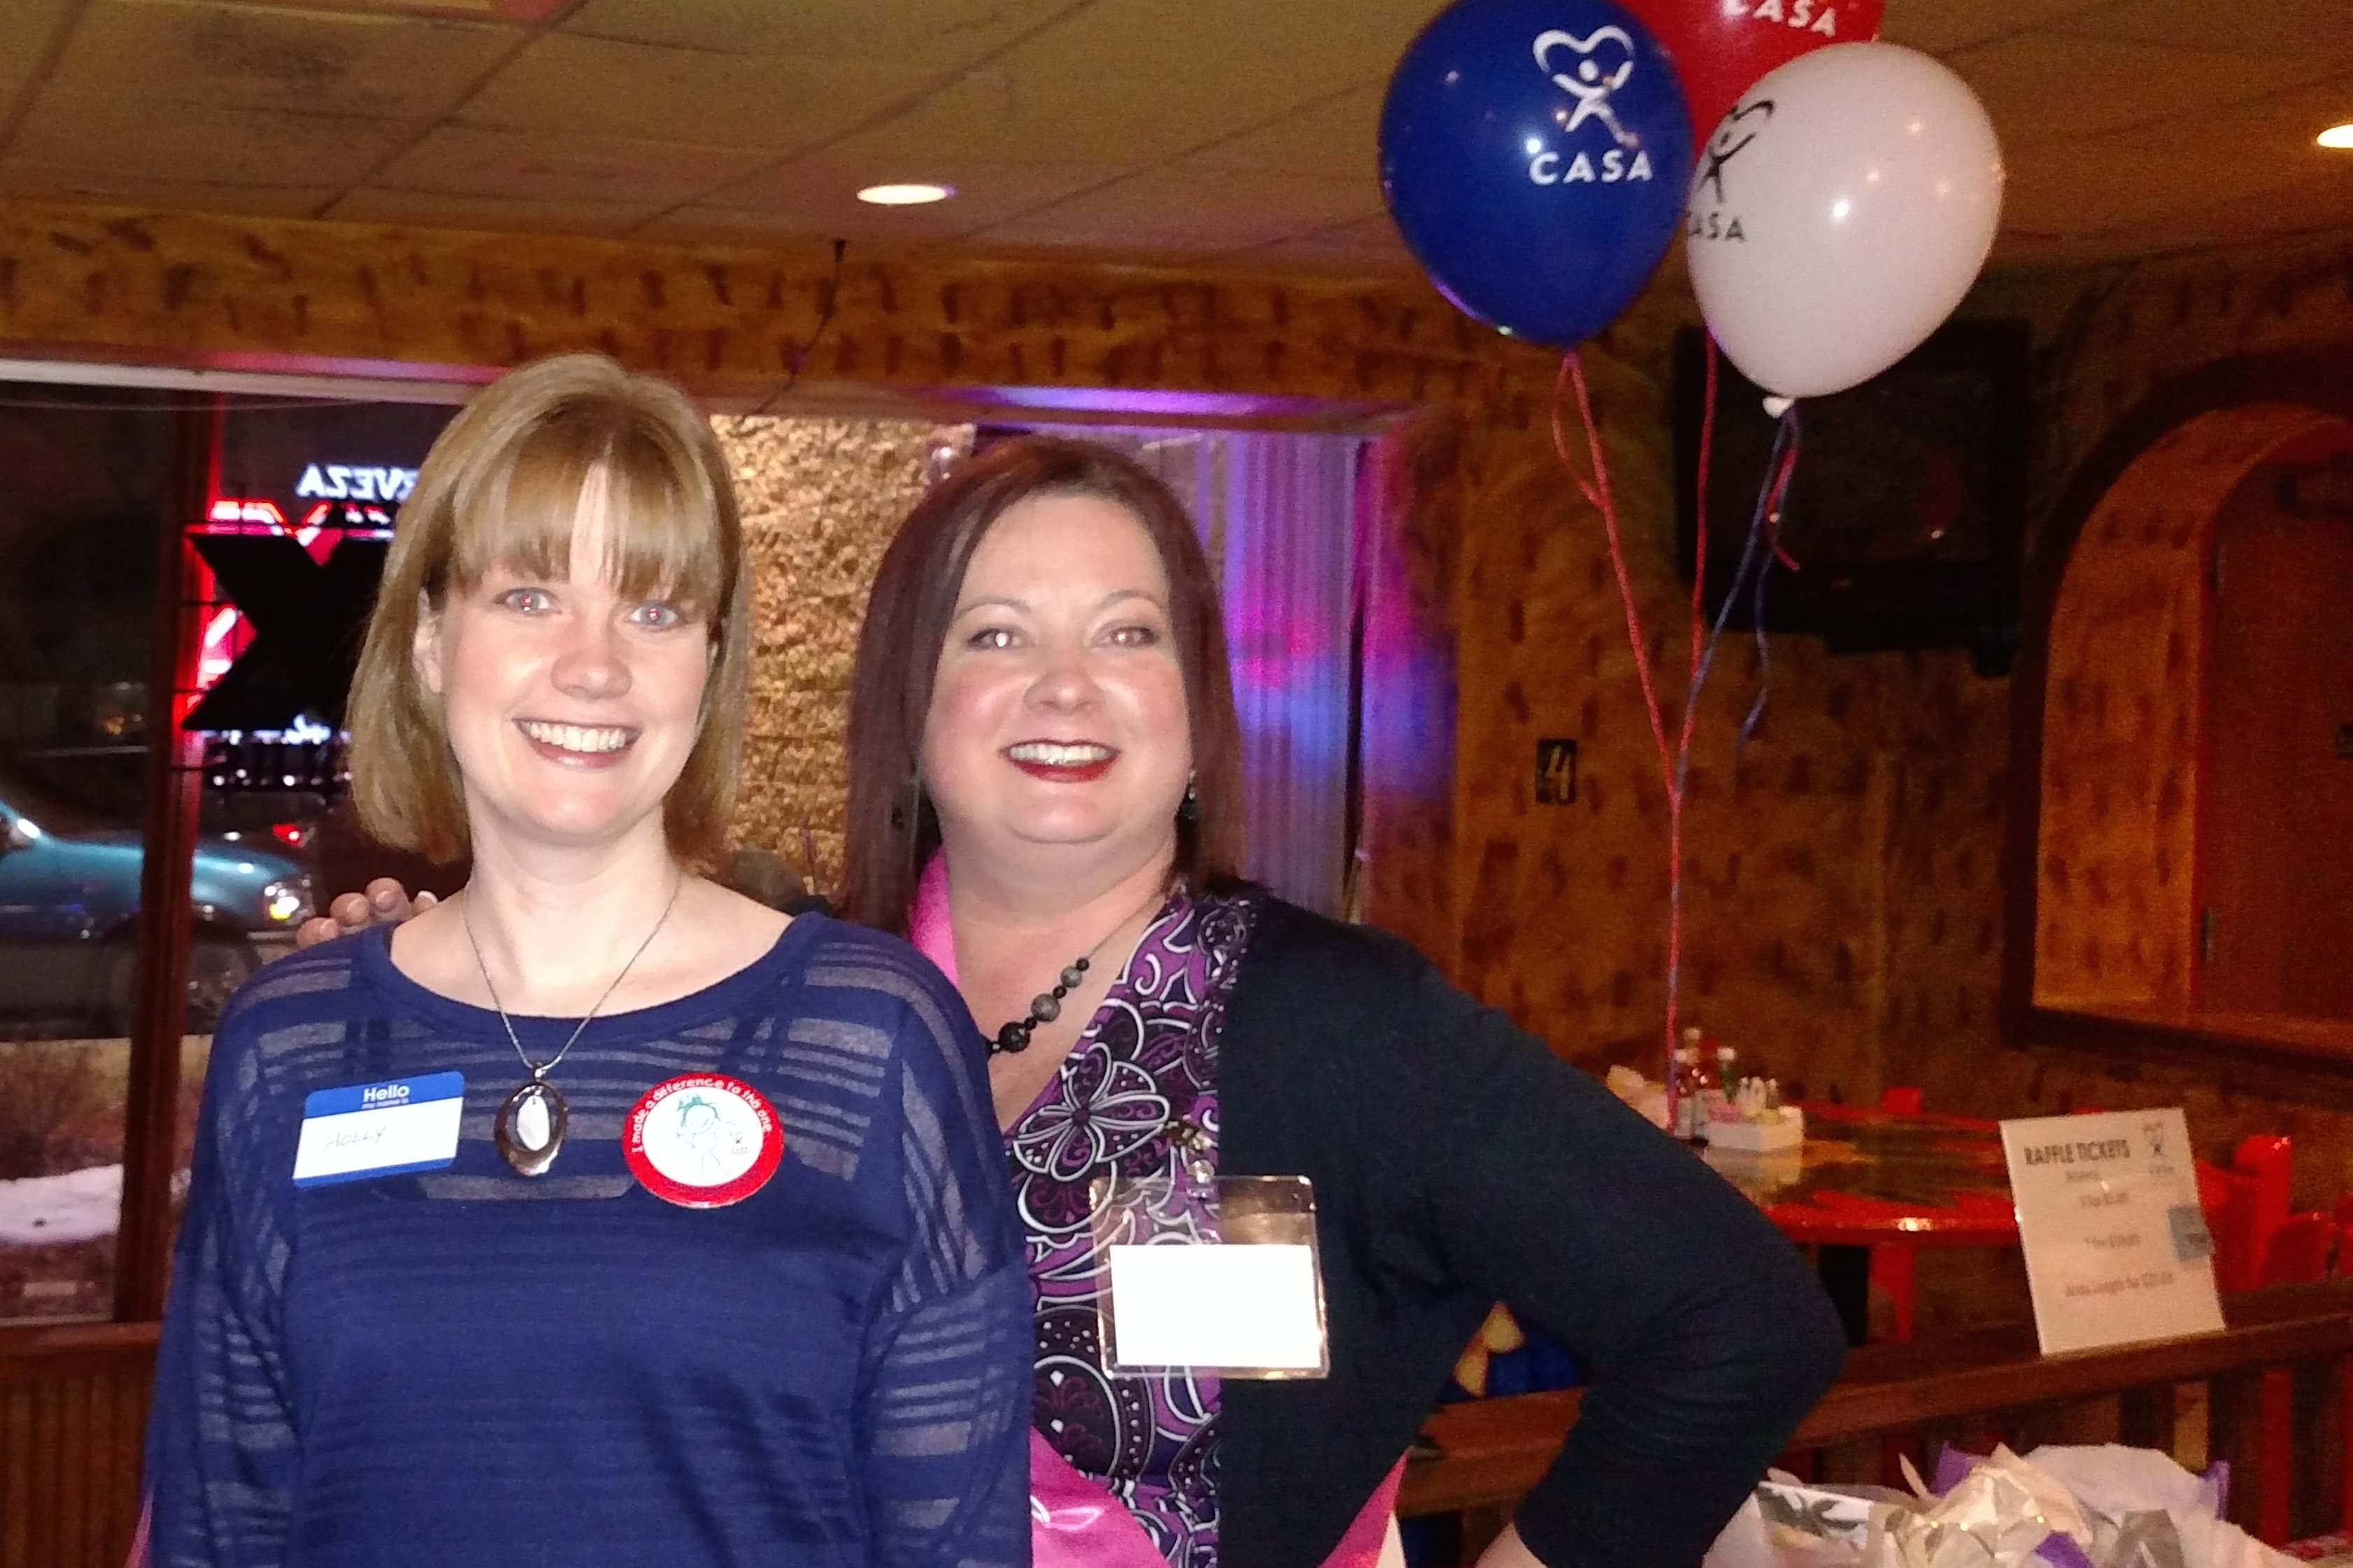 Crystal Reinoso and CASA volunteer Holly Anderson at Girls Night Out fund raiser.  January 2015